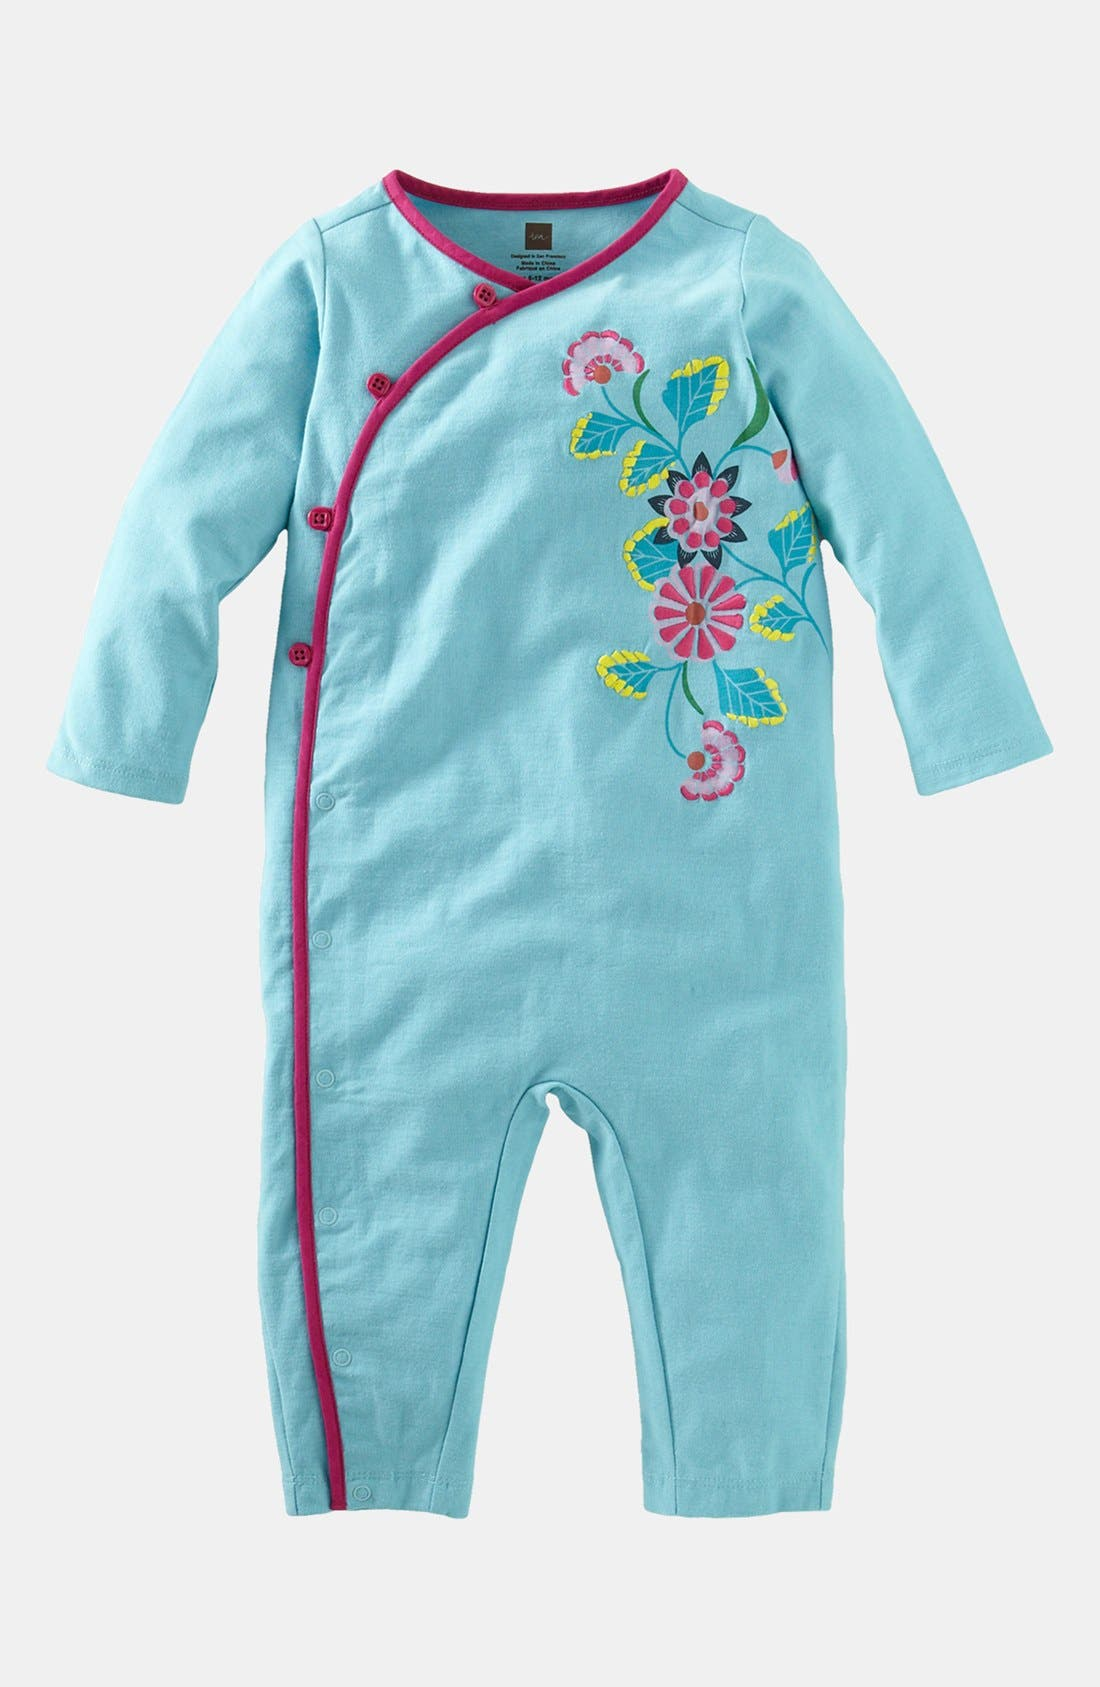 Alternate Image 1 Selected - Tea Collection Floral Wrap Romper (Baby Girl)